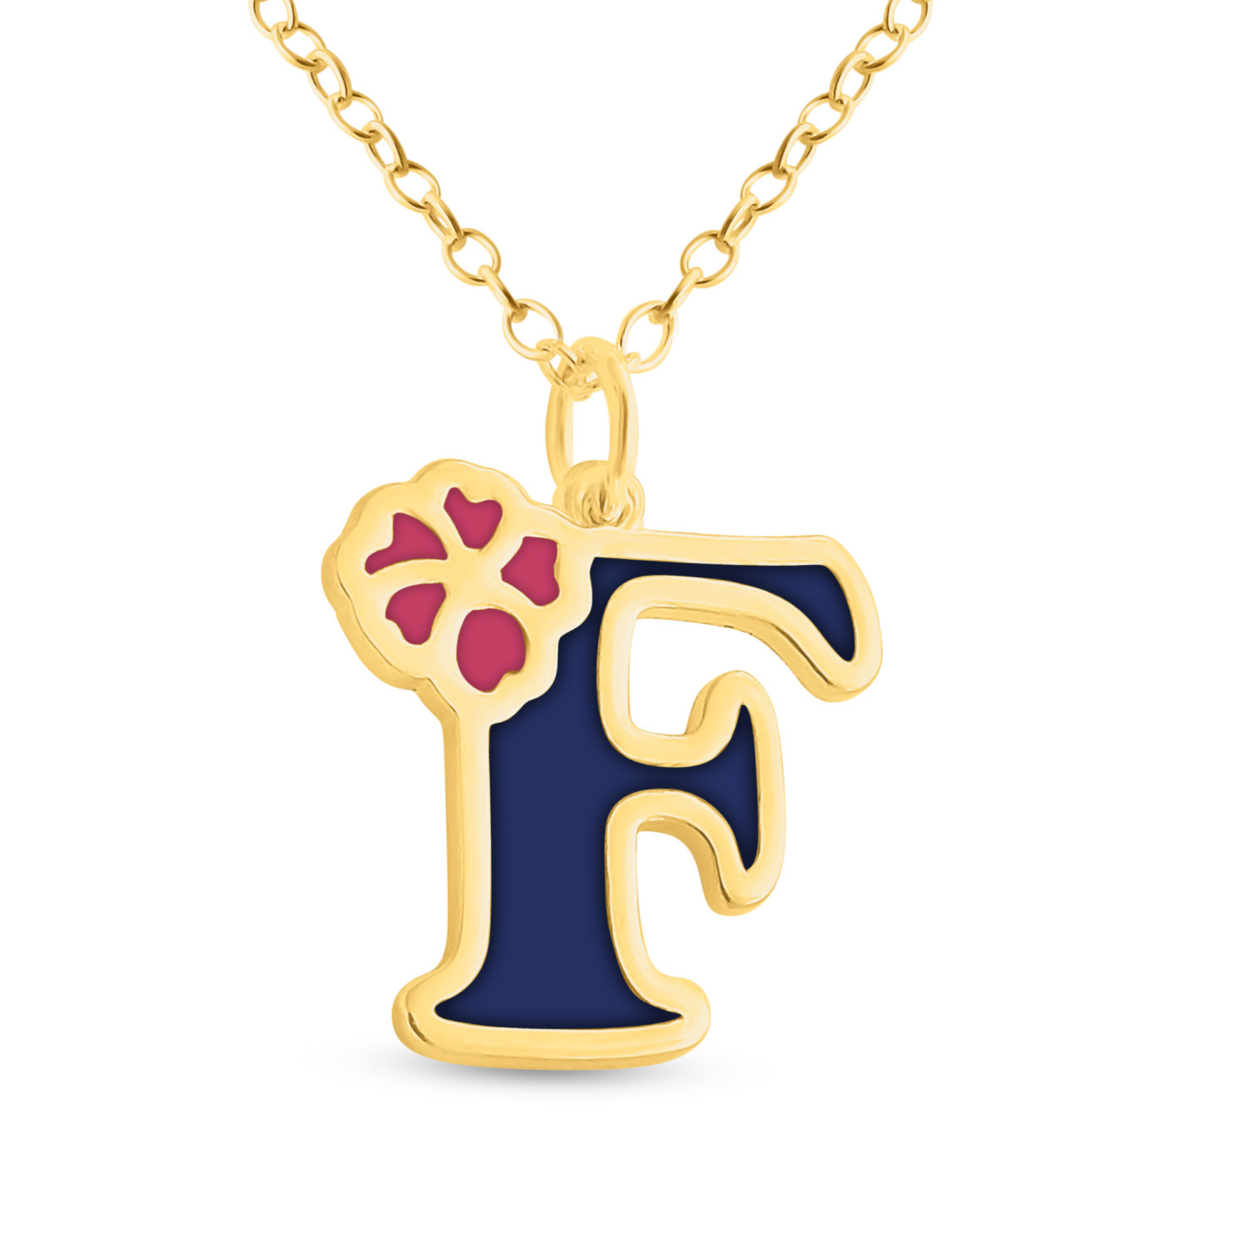 Blue Enameled Initial Letter F With Flower Multi Colors Charm Pendant Necklace #14k Gold Plated Over 925 Sterling Silver #azaggi N0854g_f_v1 12 Child